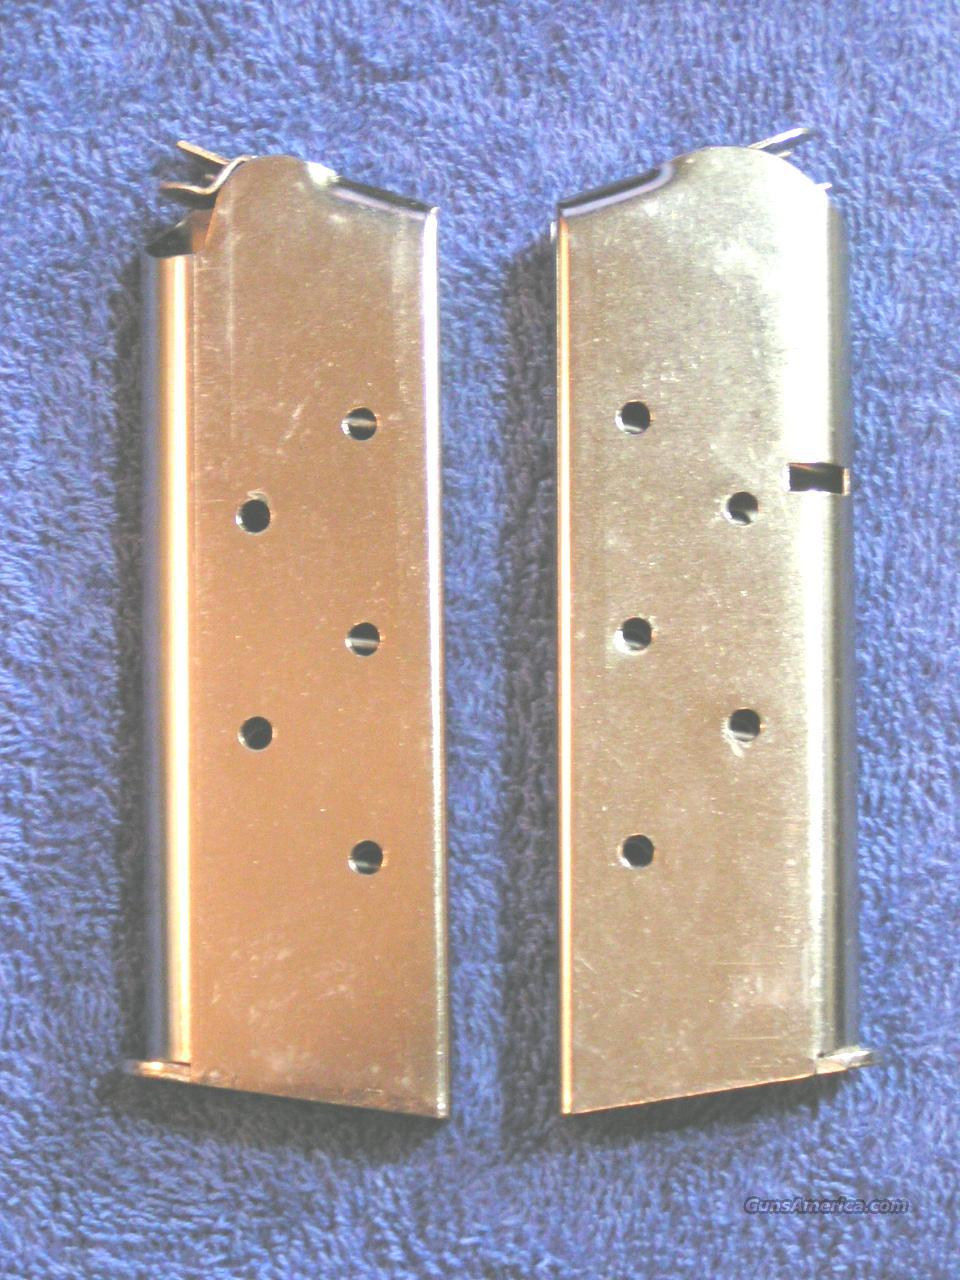 2 Colt officer's mags Nickel 6 rd $29 each mag X 2  officers  Non-Guns > Magazines & Clips > Pistol Magazines > Other